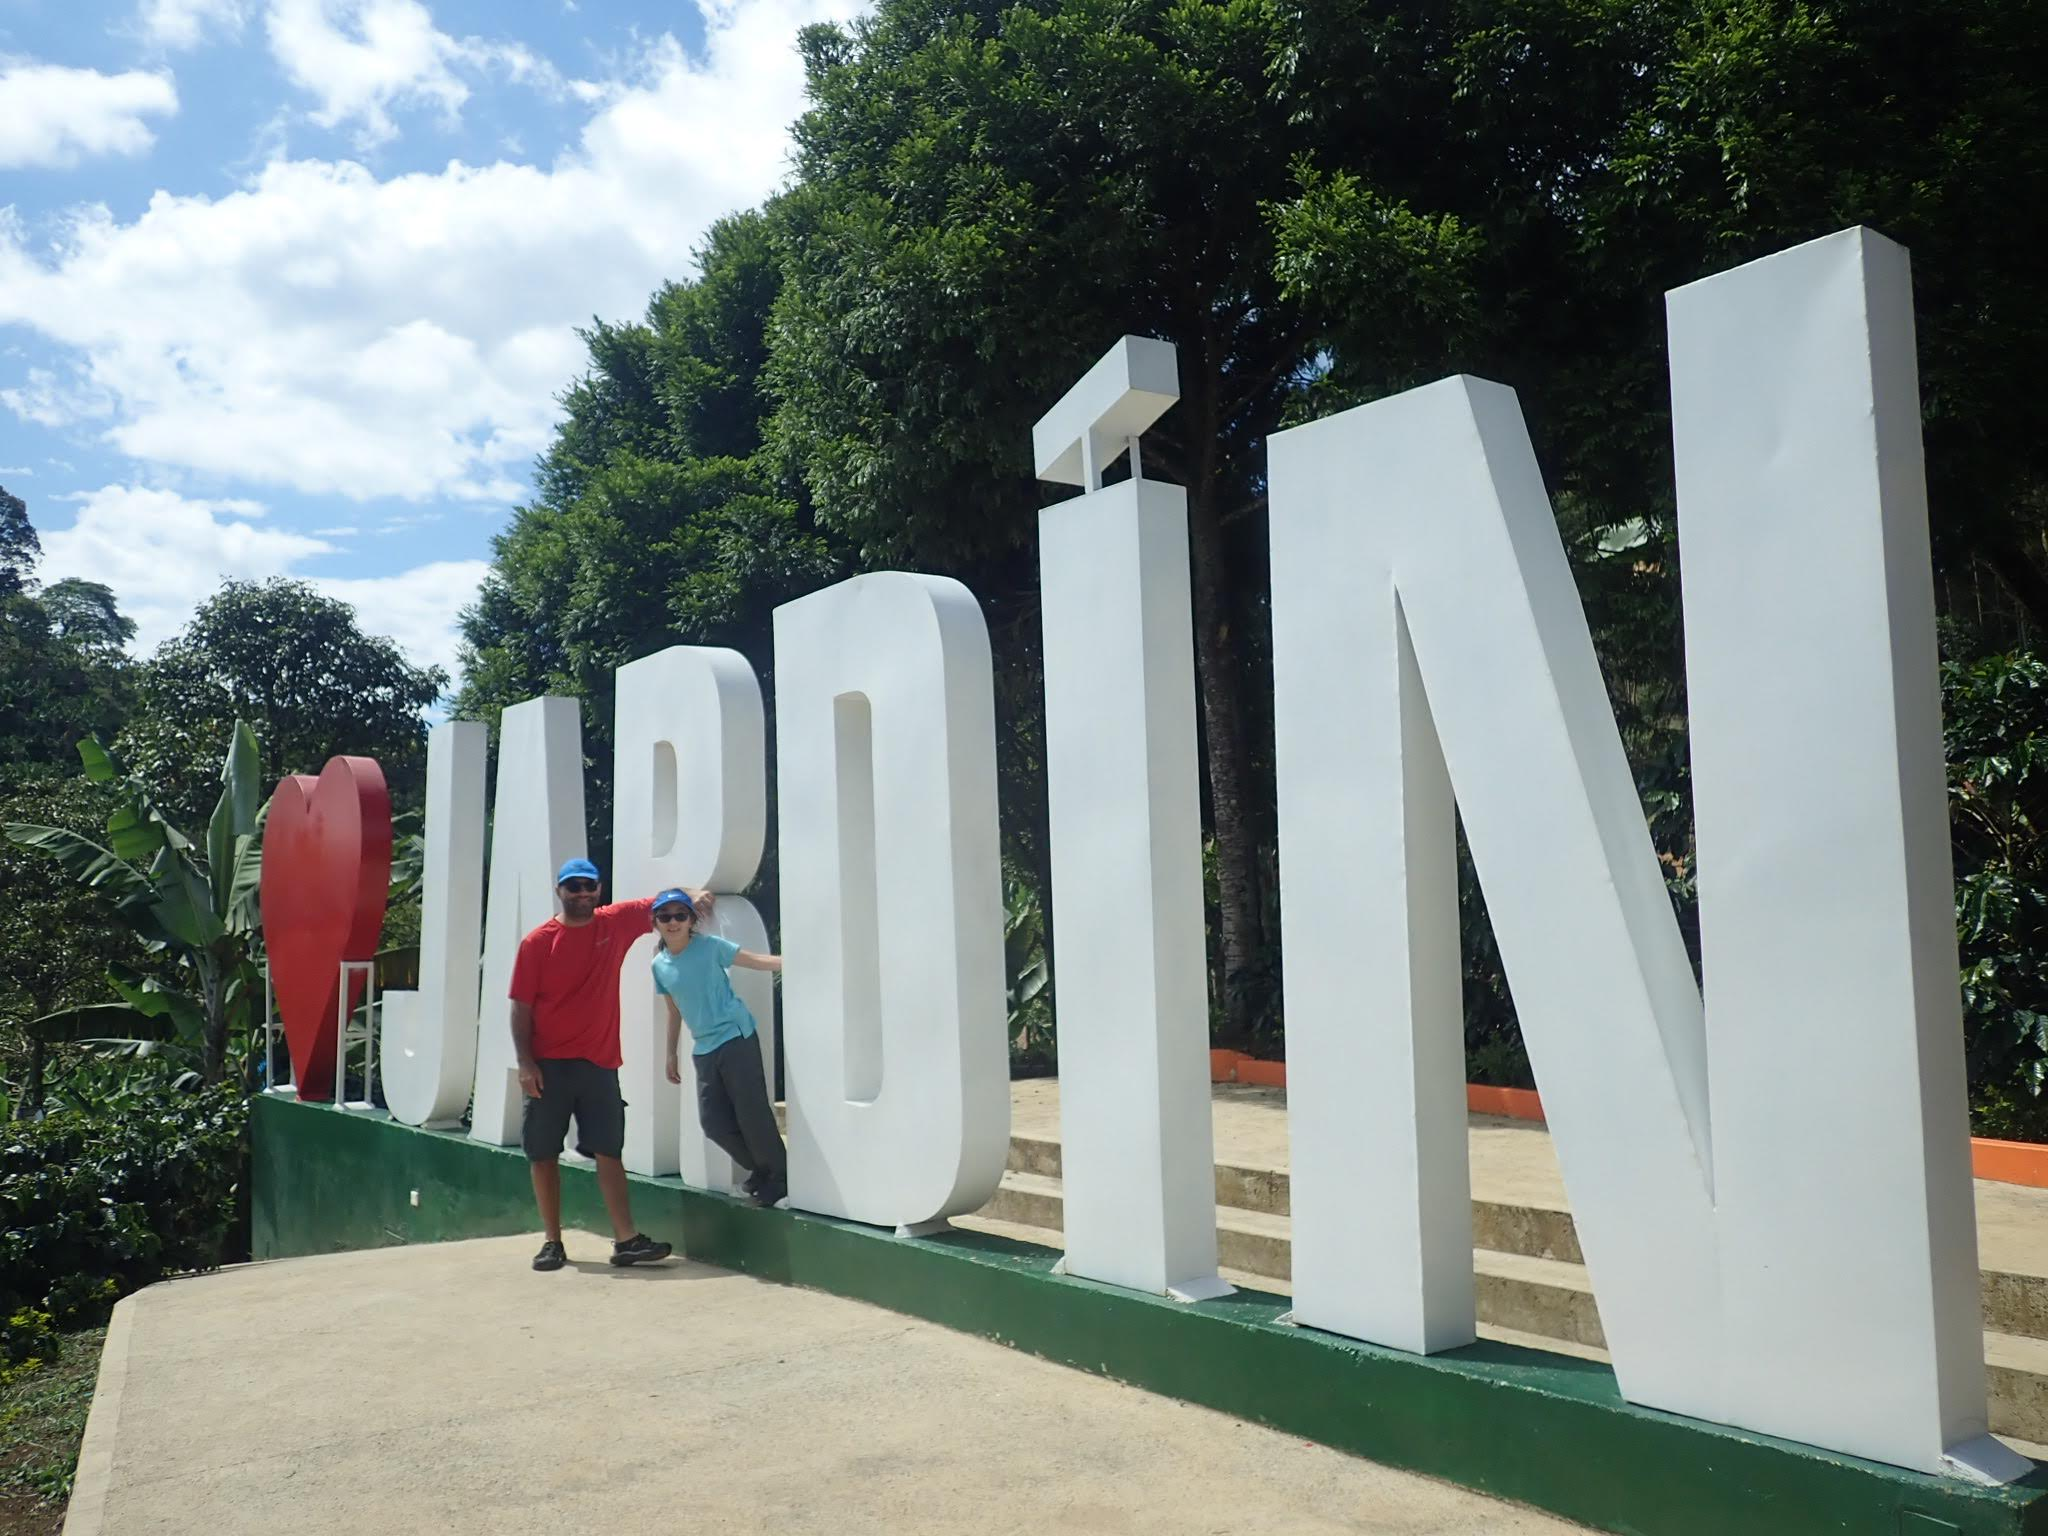 Daniela and Joe at the Jardin sign in Colombia